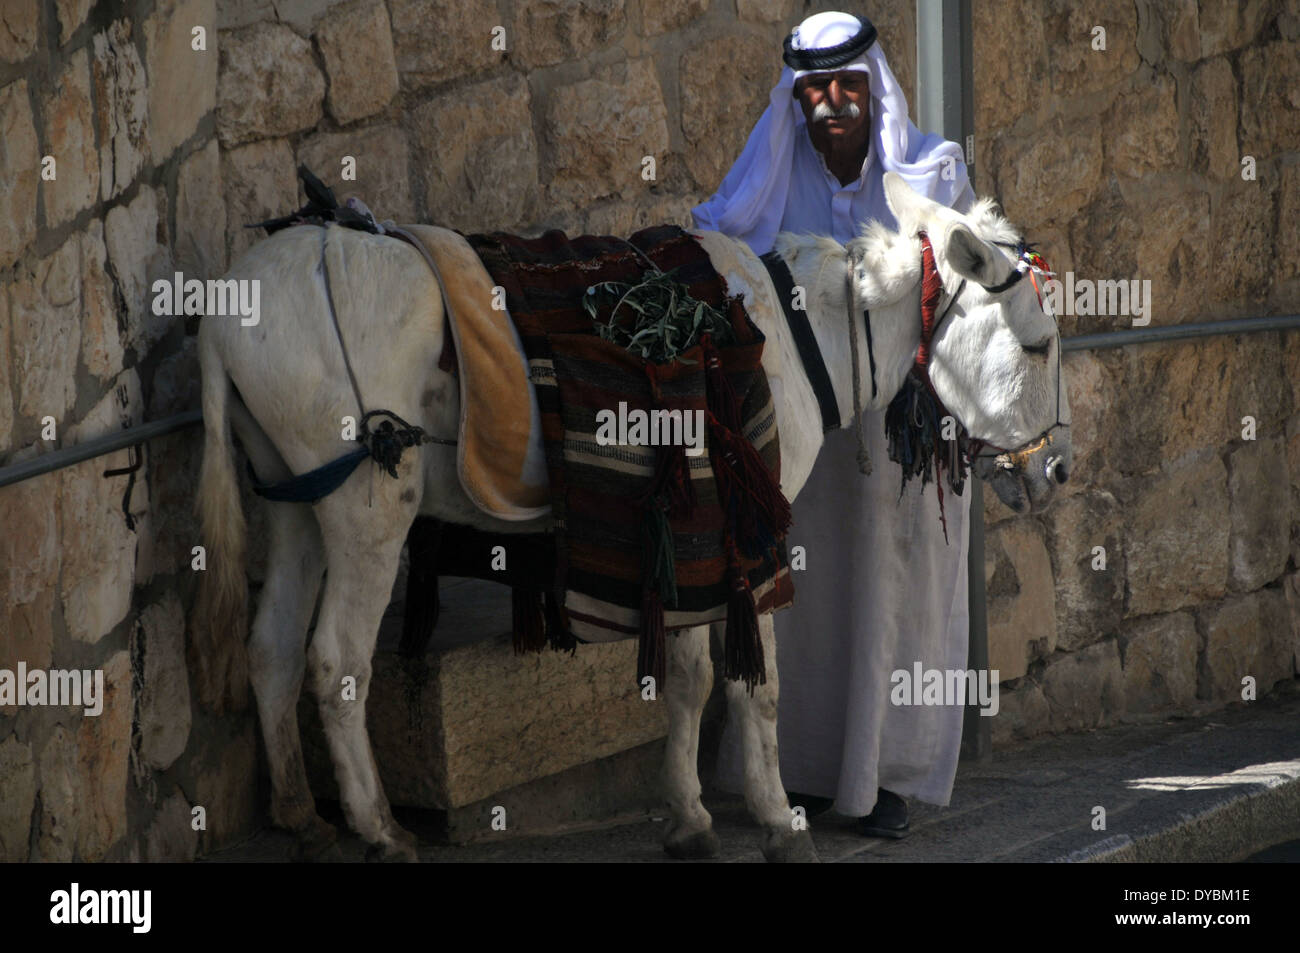 Man in Arabic tunic and donkey, Jerusalem, Israel - Stock Image